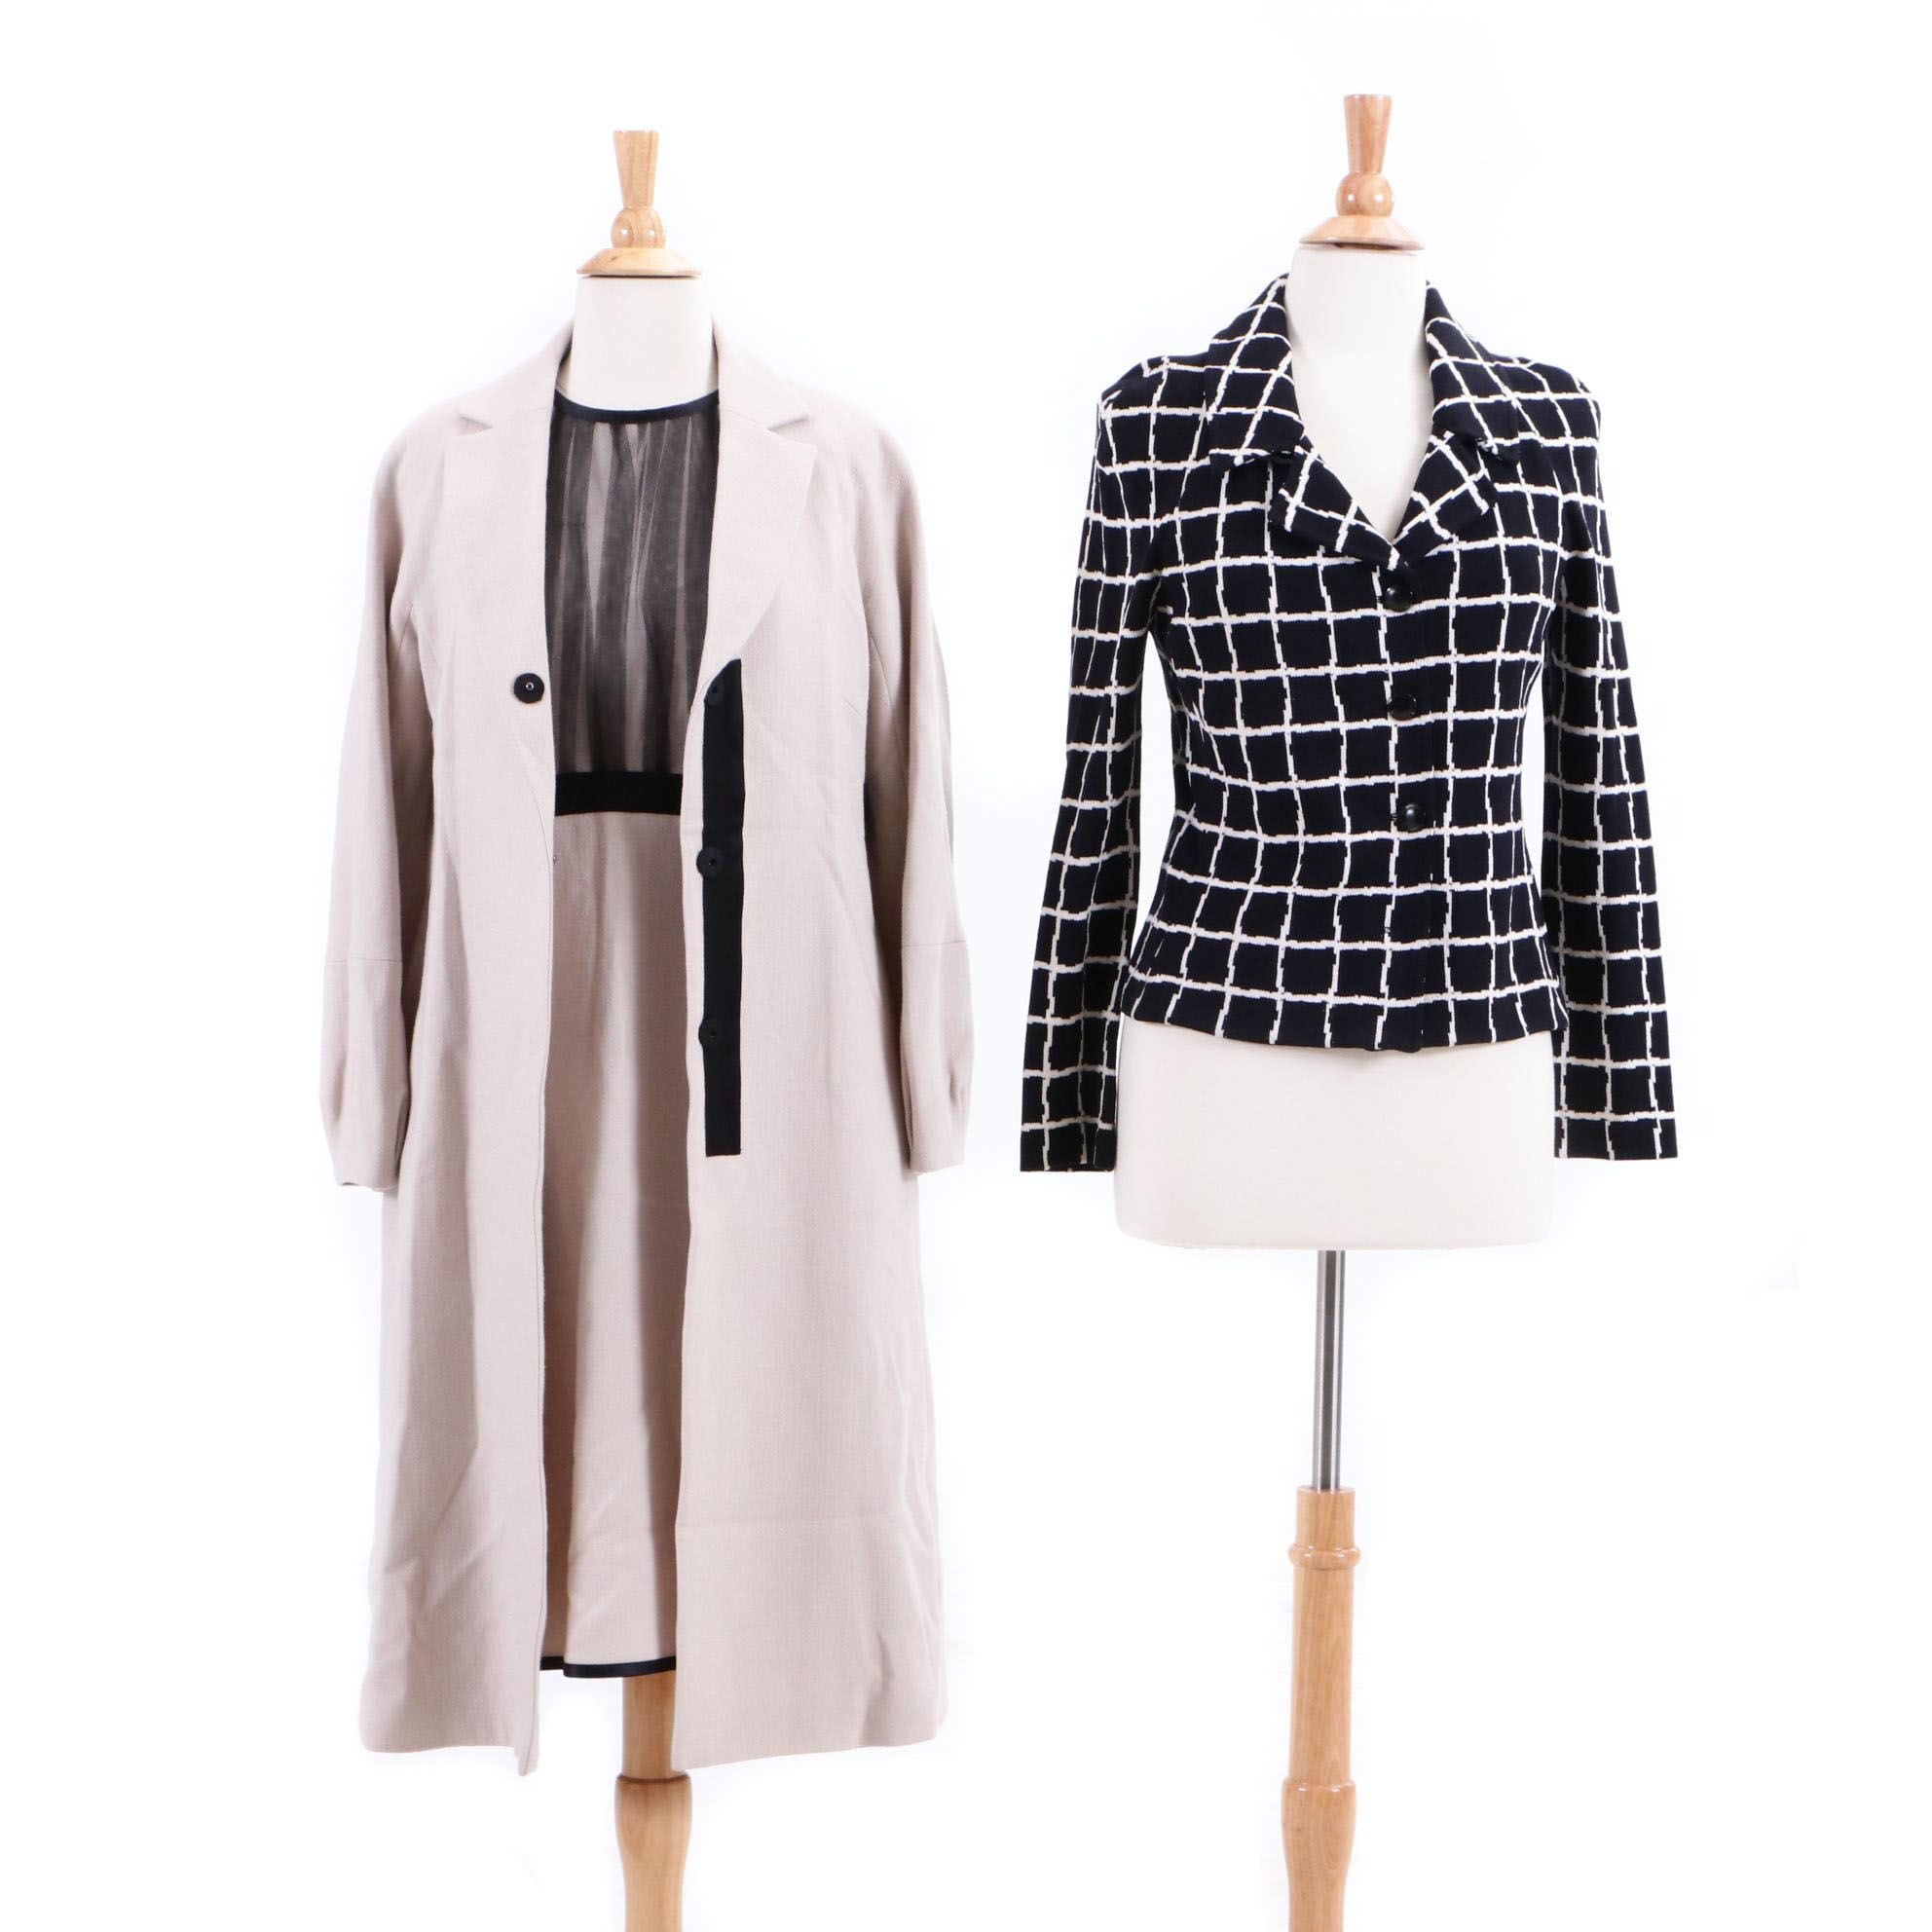 St. John Collection Knit Jacket and Lida Baday Dress with Matching Coat